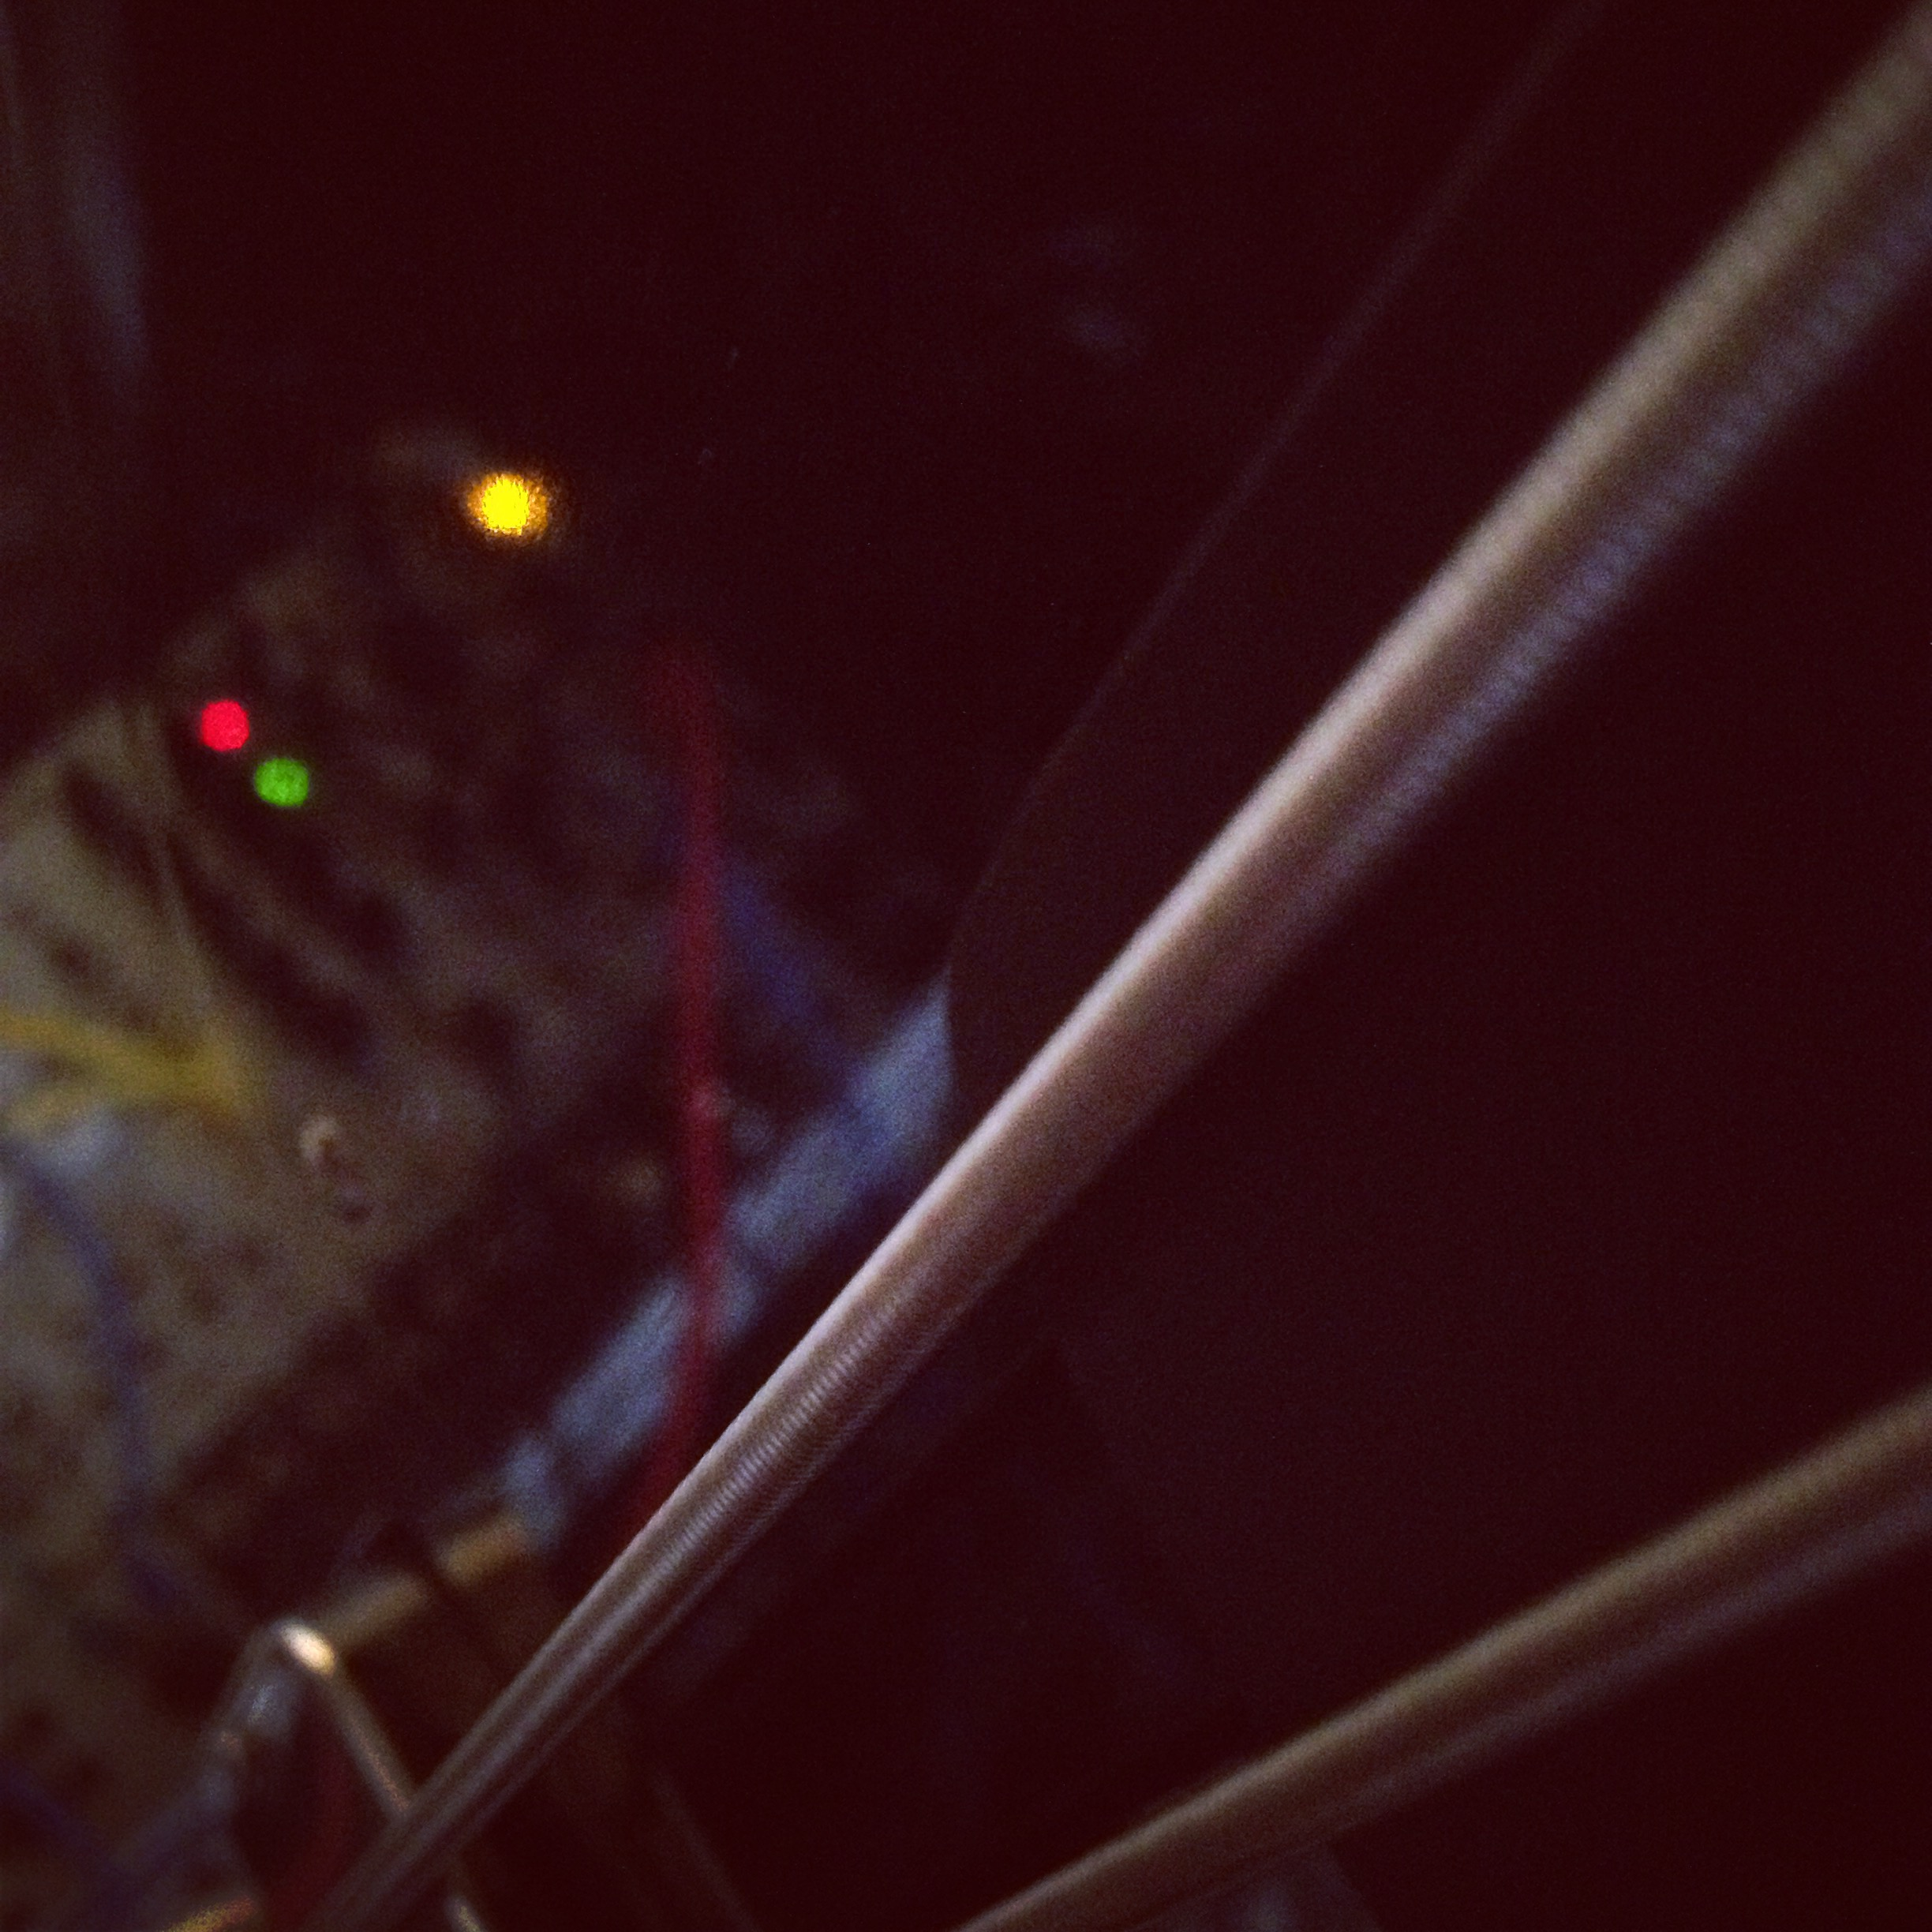 Modular synth reflected in the Creston fretless